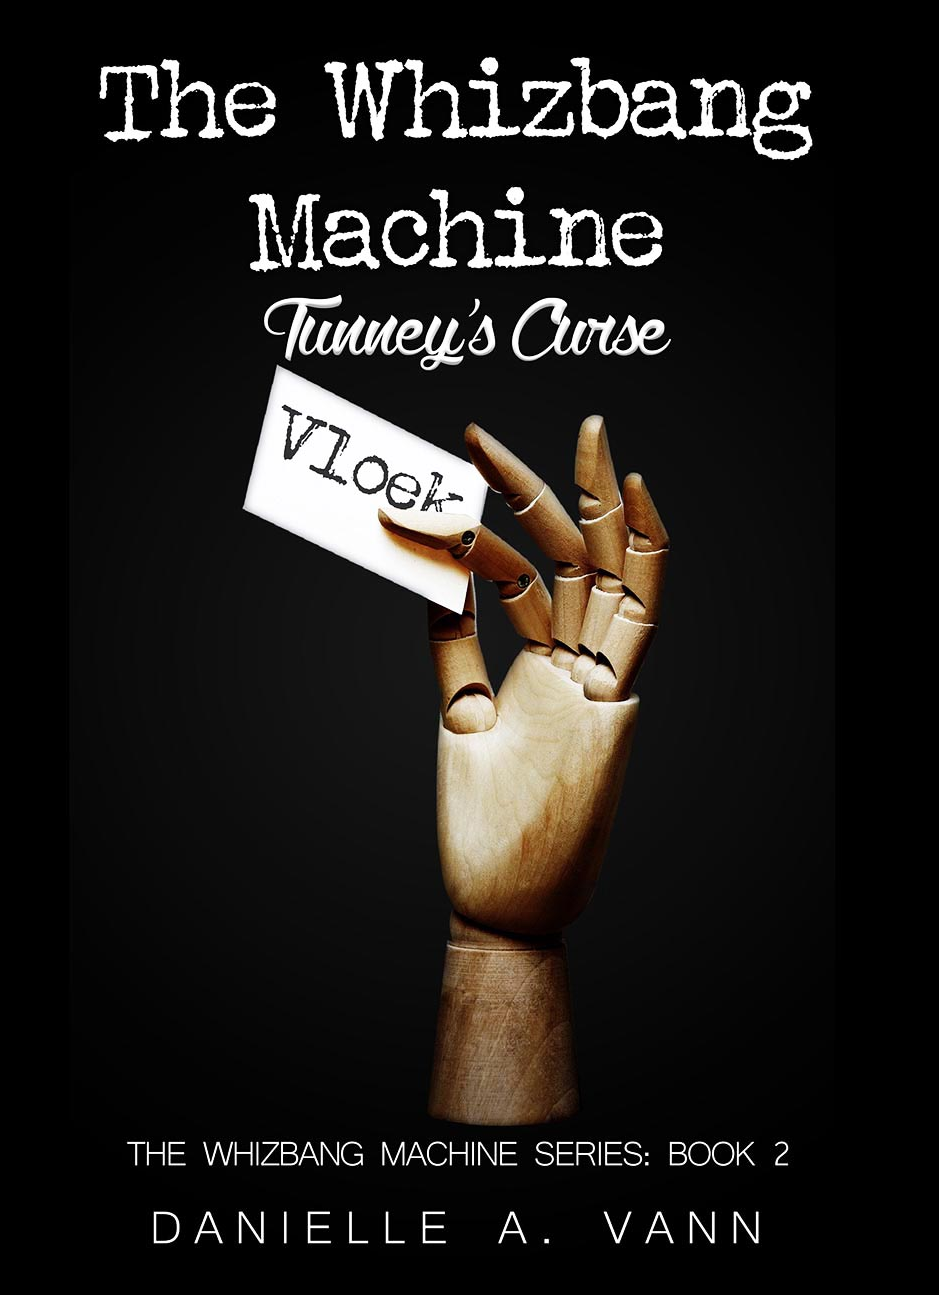 Tunney's Curse, The Whizbang Machine Book 2